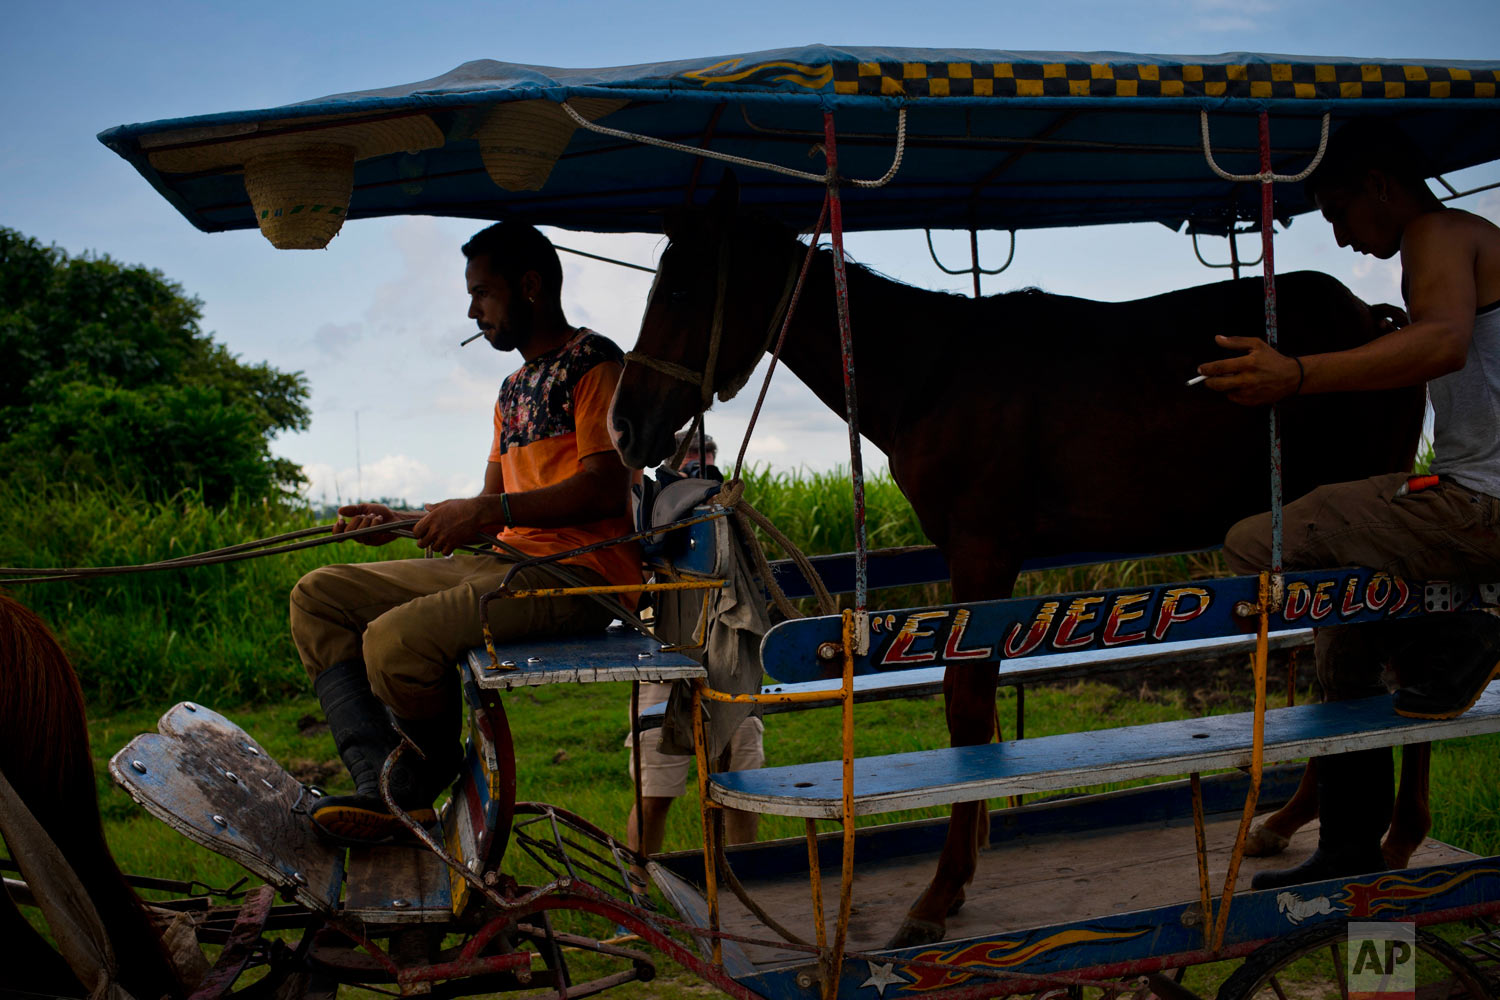 In this July 26, 2018 photo, a young horse is transported in a horse-drawn carriage along the main road of Camaguey, Cuba. The horse was carried to protect its soft hooves from the asphalt and prevent it from getting spooked by passing cars. (AP Photo/Ramon Espinosa)